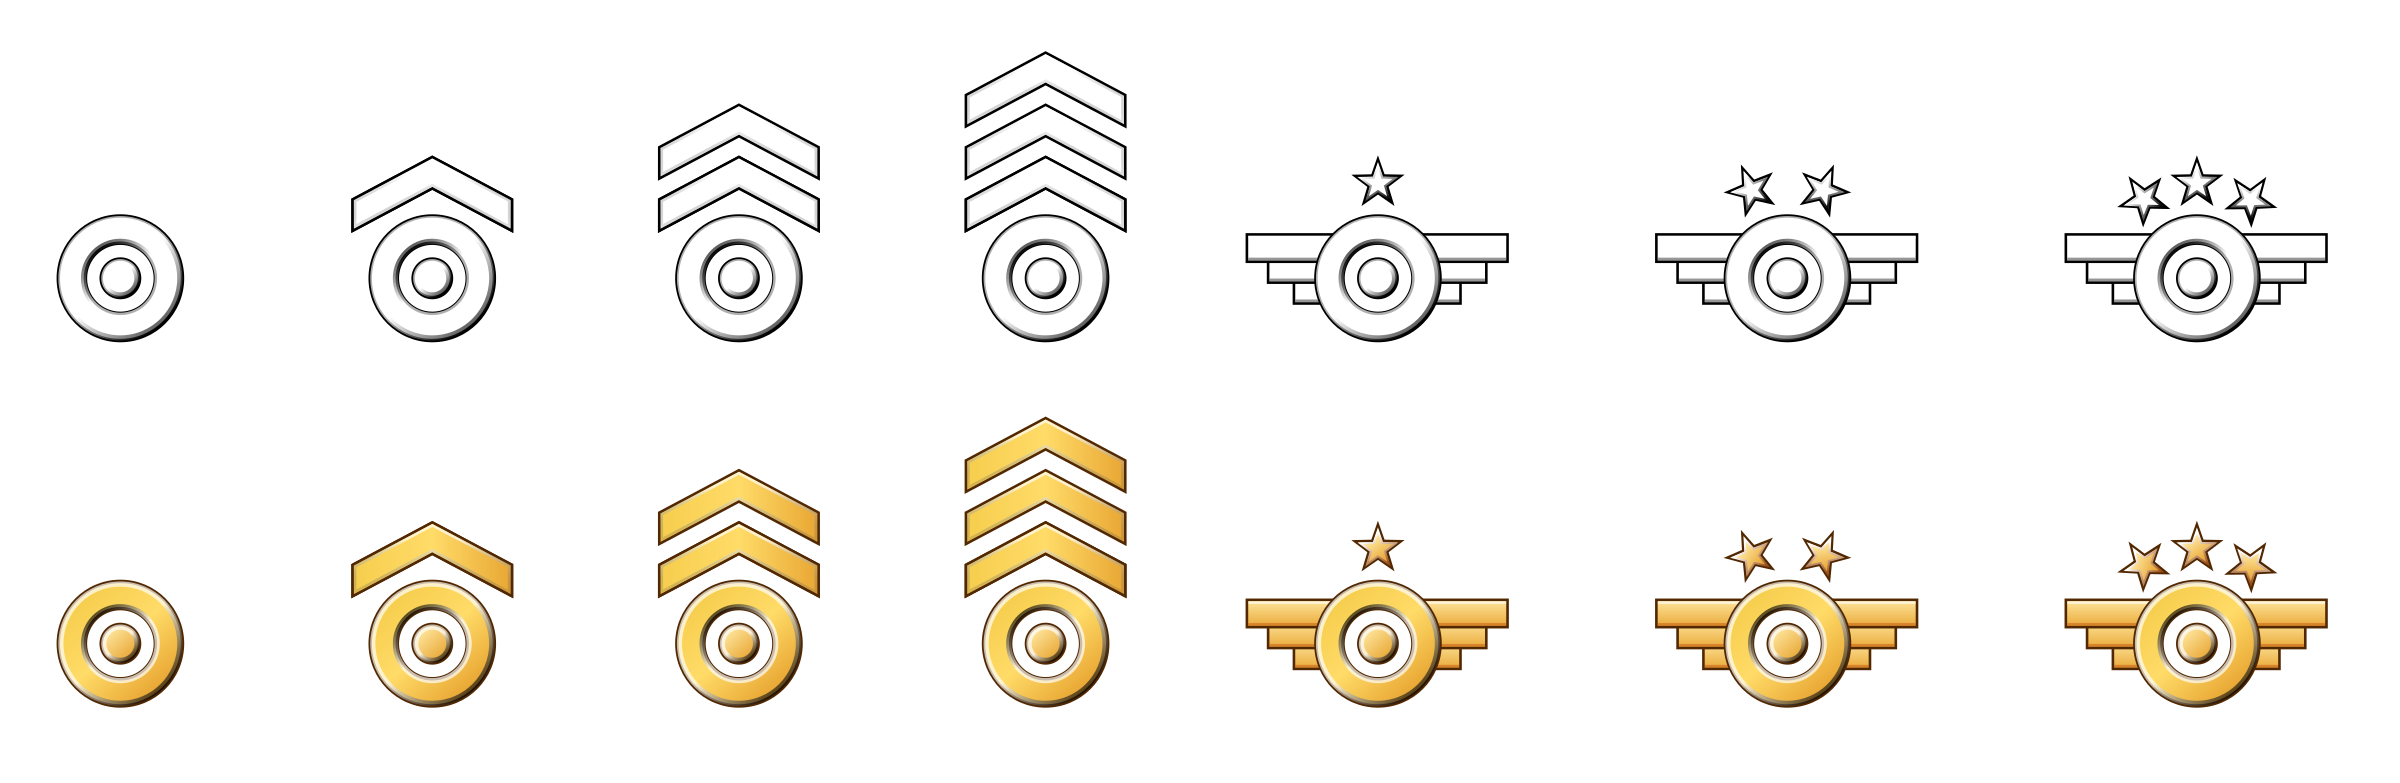 Military Badges by sirgazil